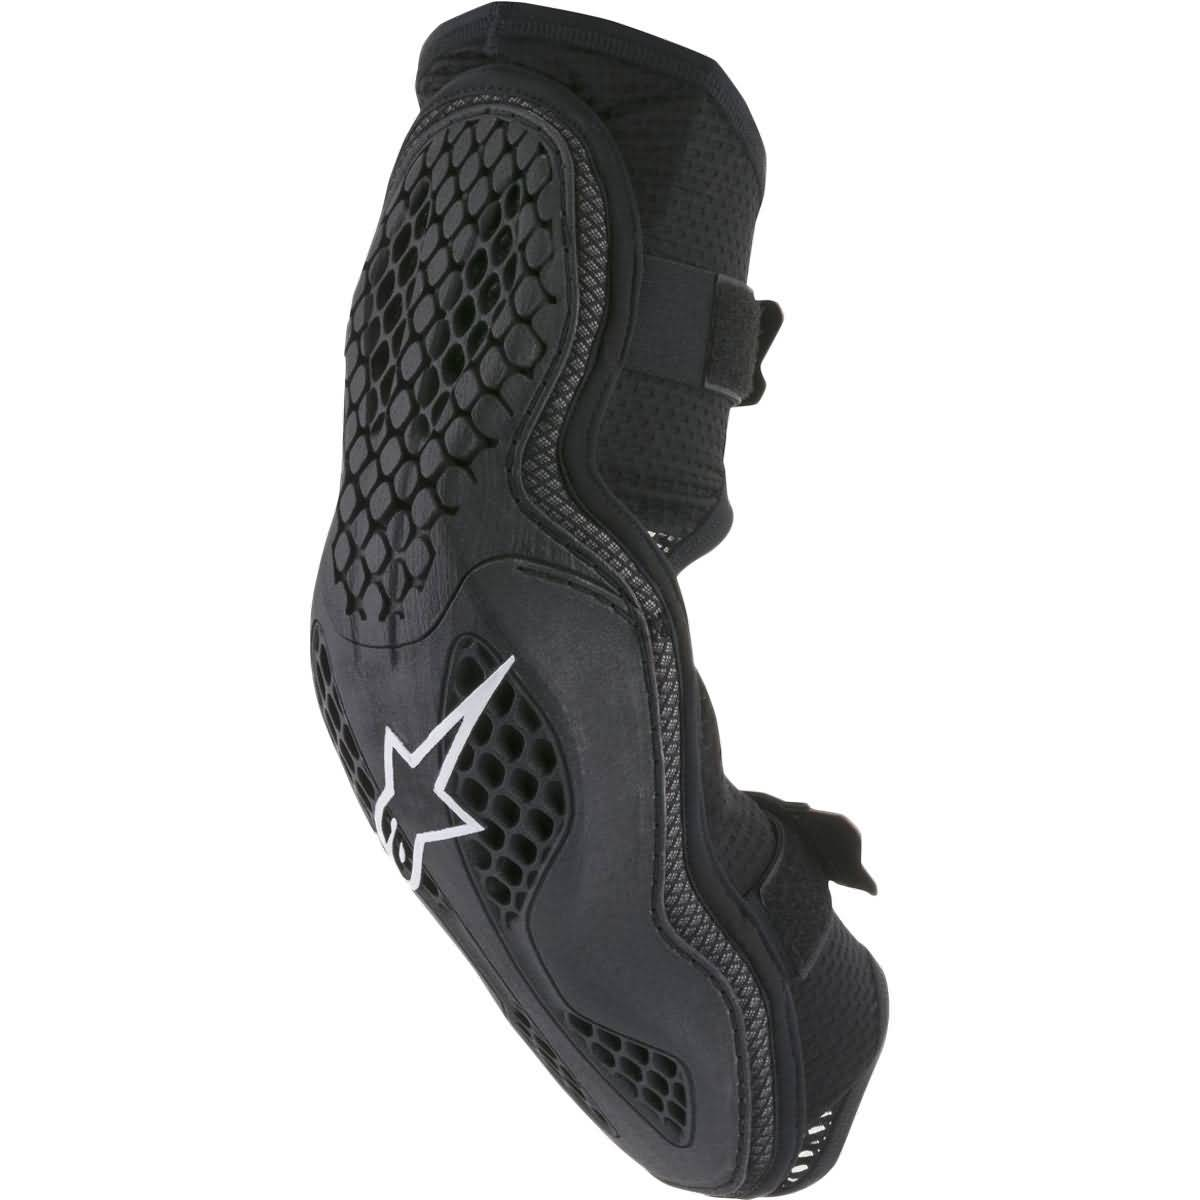 Alpinestars Sequence Elbow Guard Men's Off-Road Body Armor-6502518